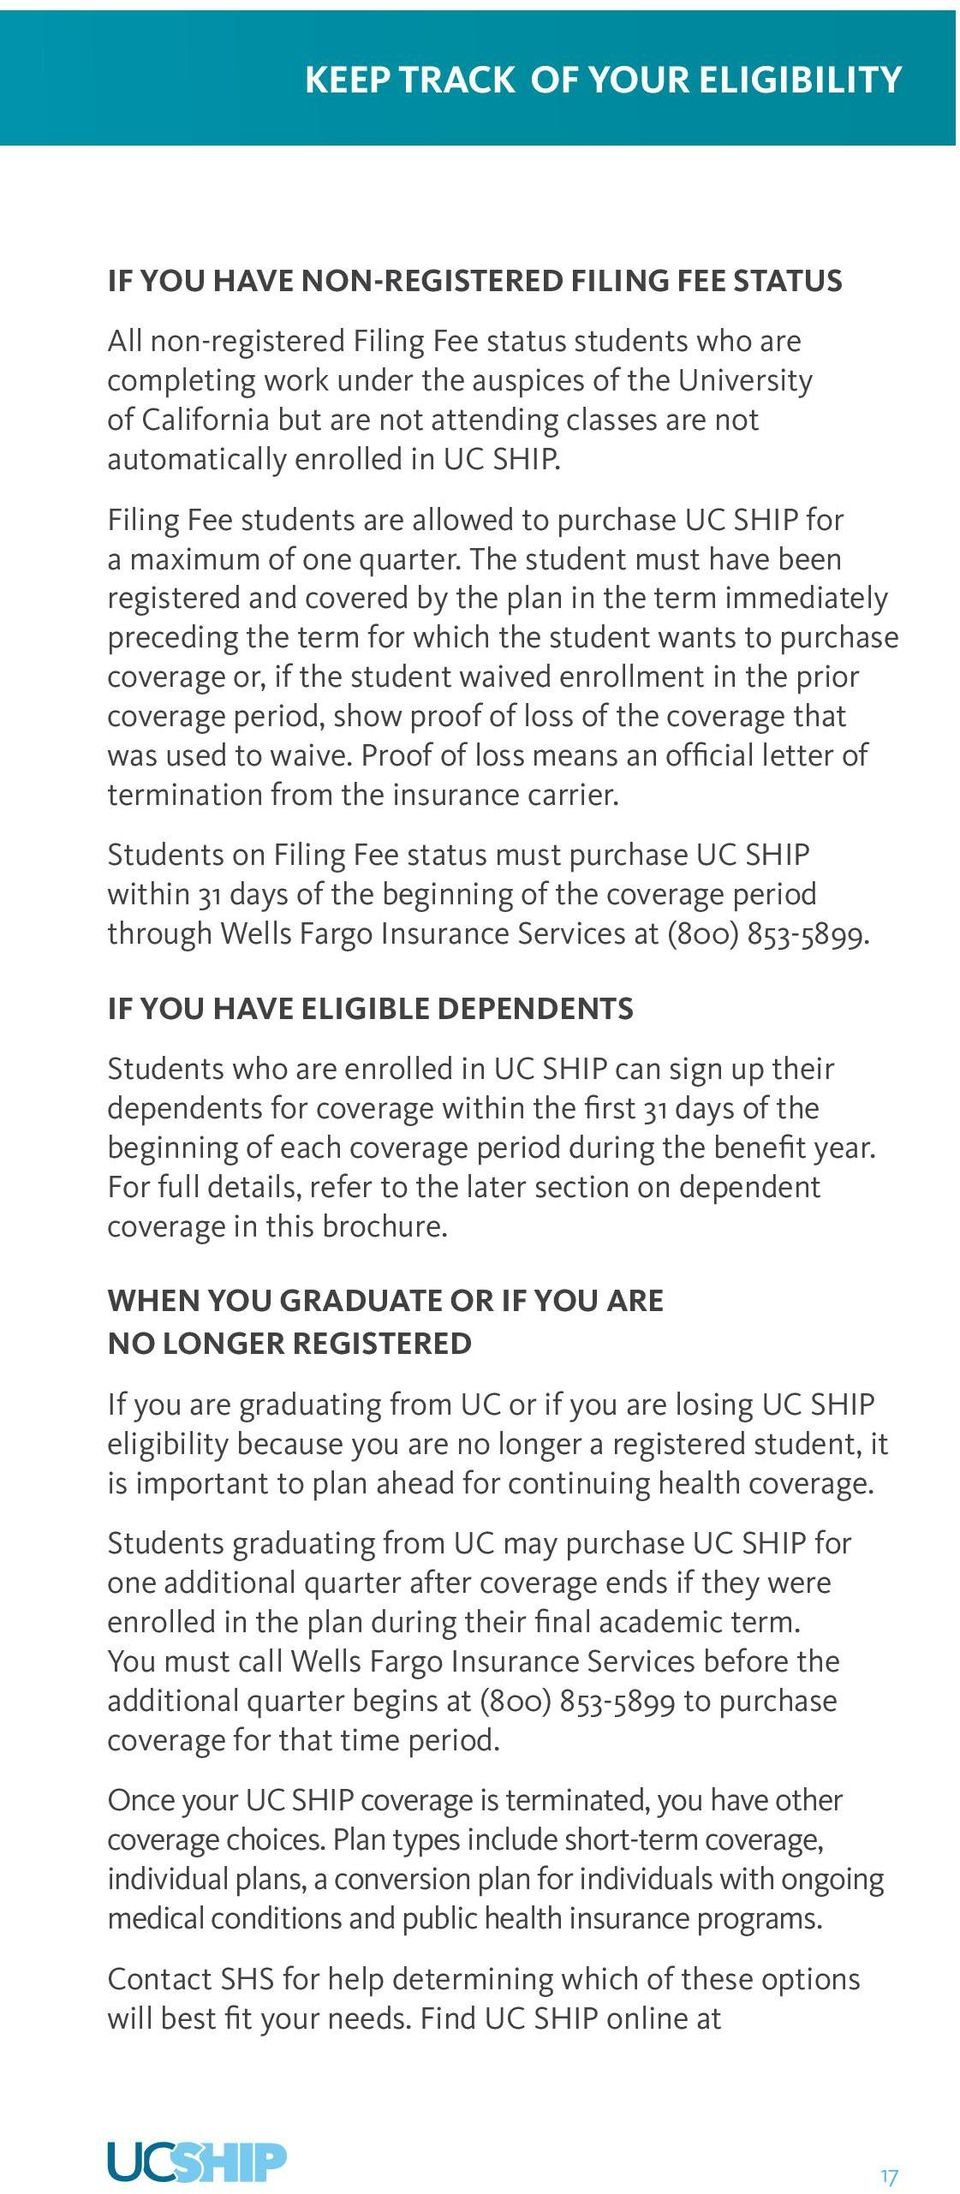 The student must have been registered and covered by the plan in the term immediately preceding the term for which the student wants to purchase coverage or, if the student waived enrollment in the